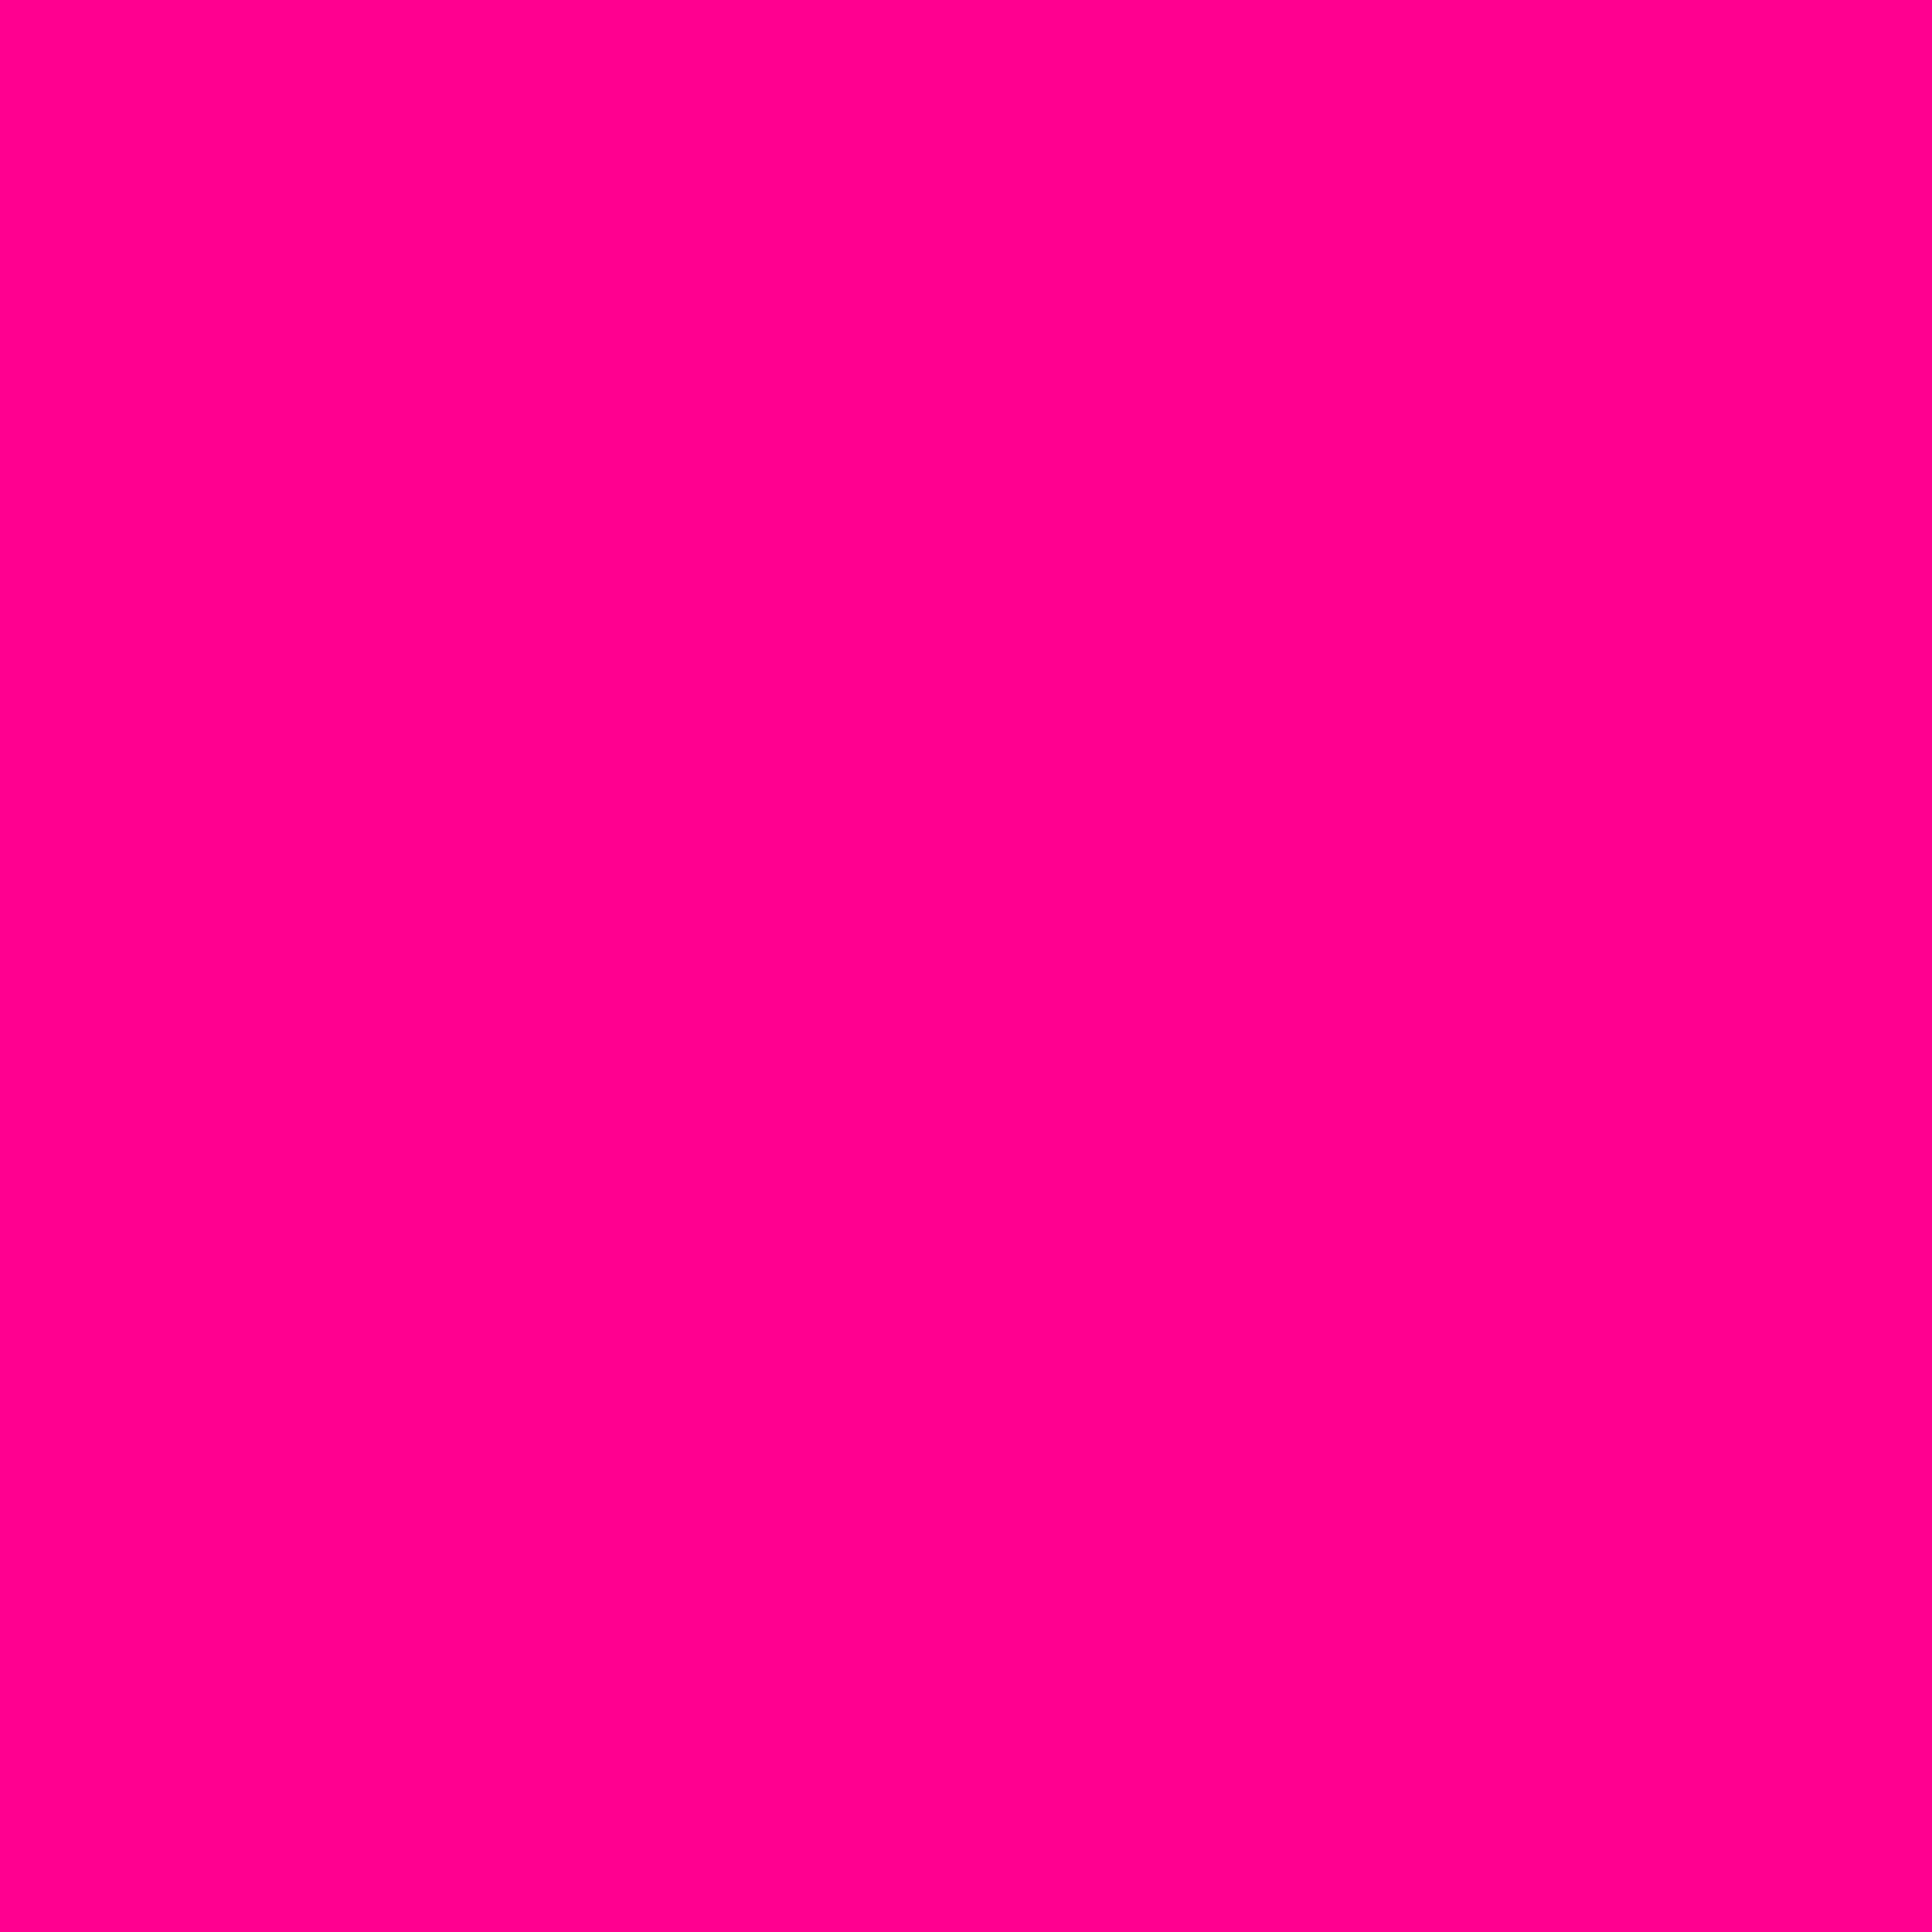 3600x3600 Magenta Process Solid Color Background